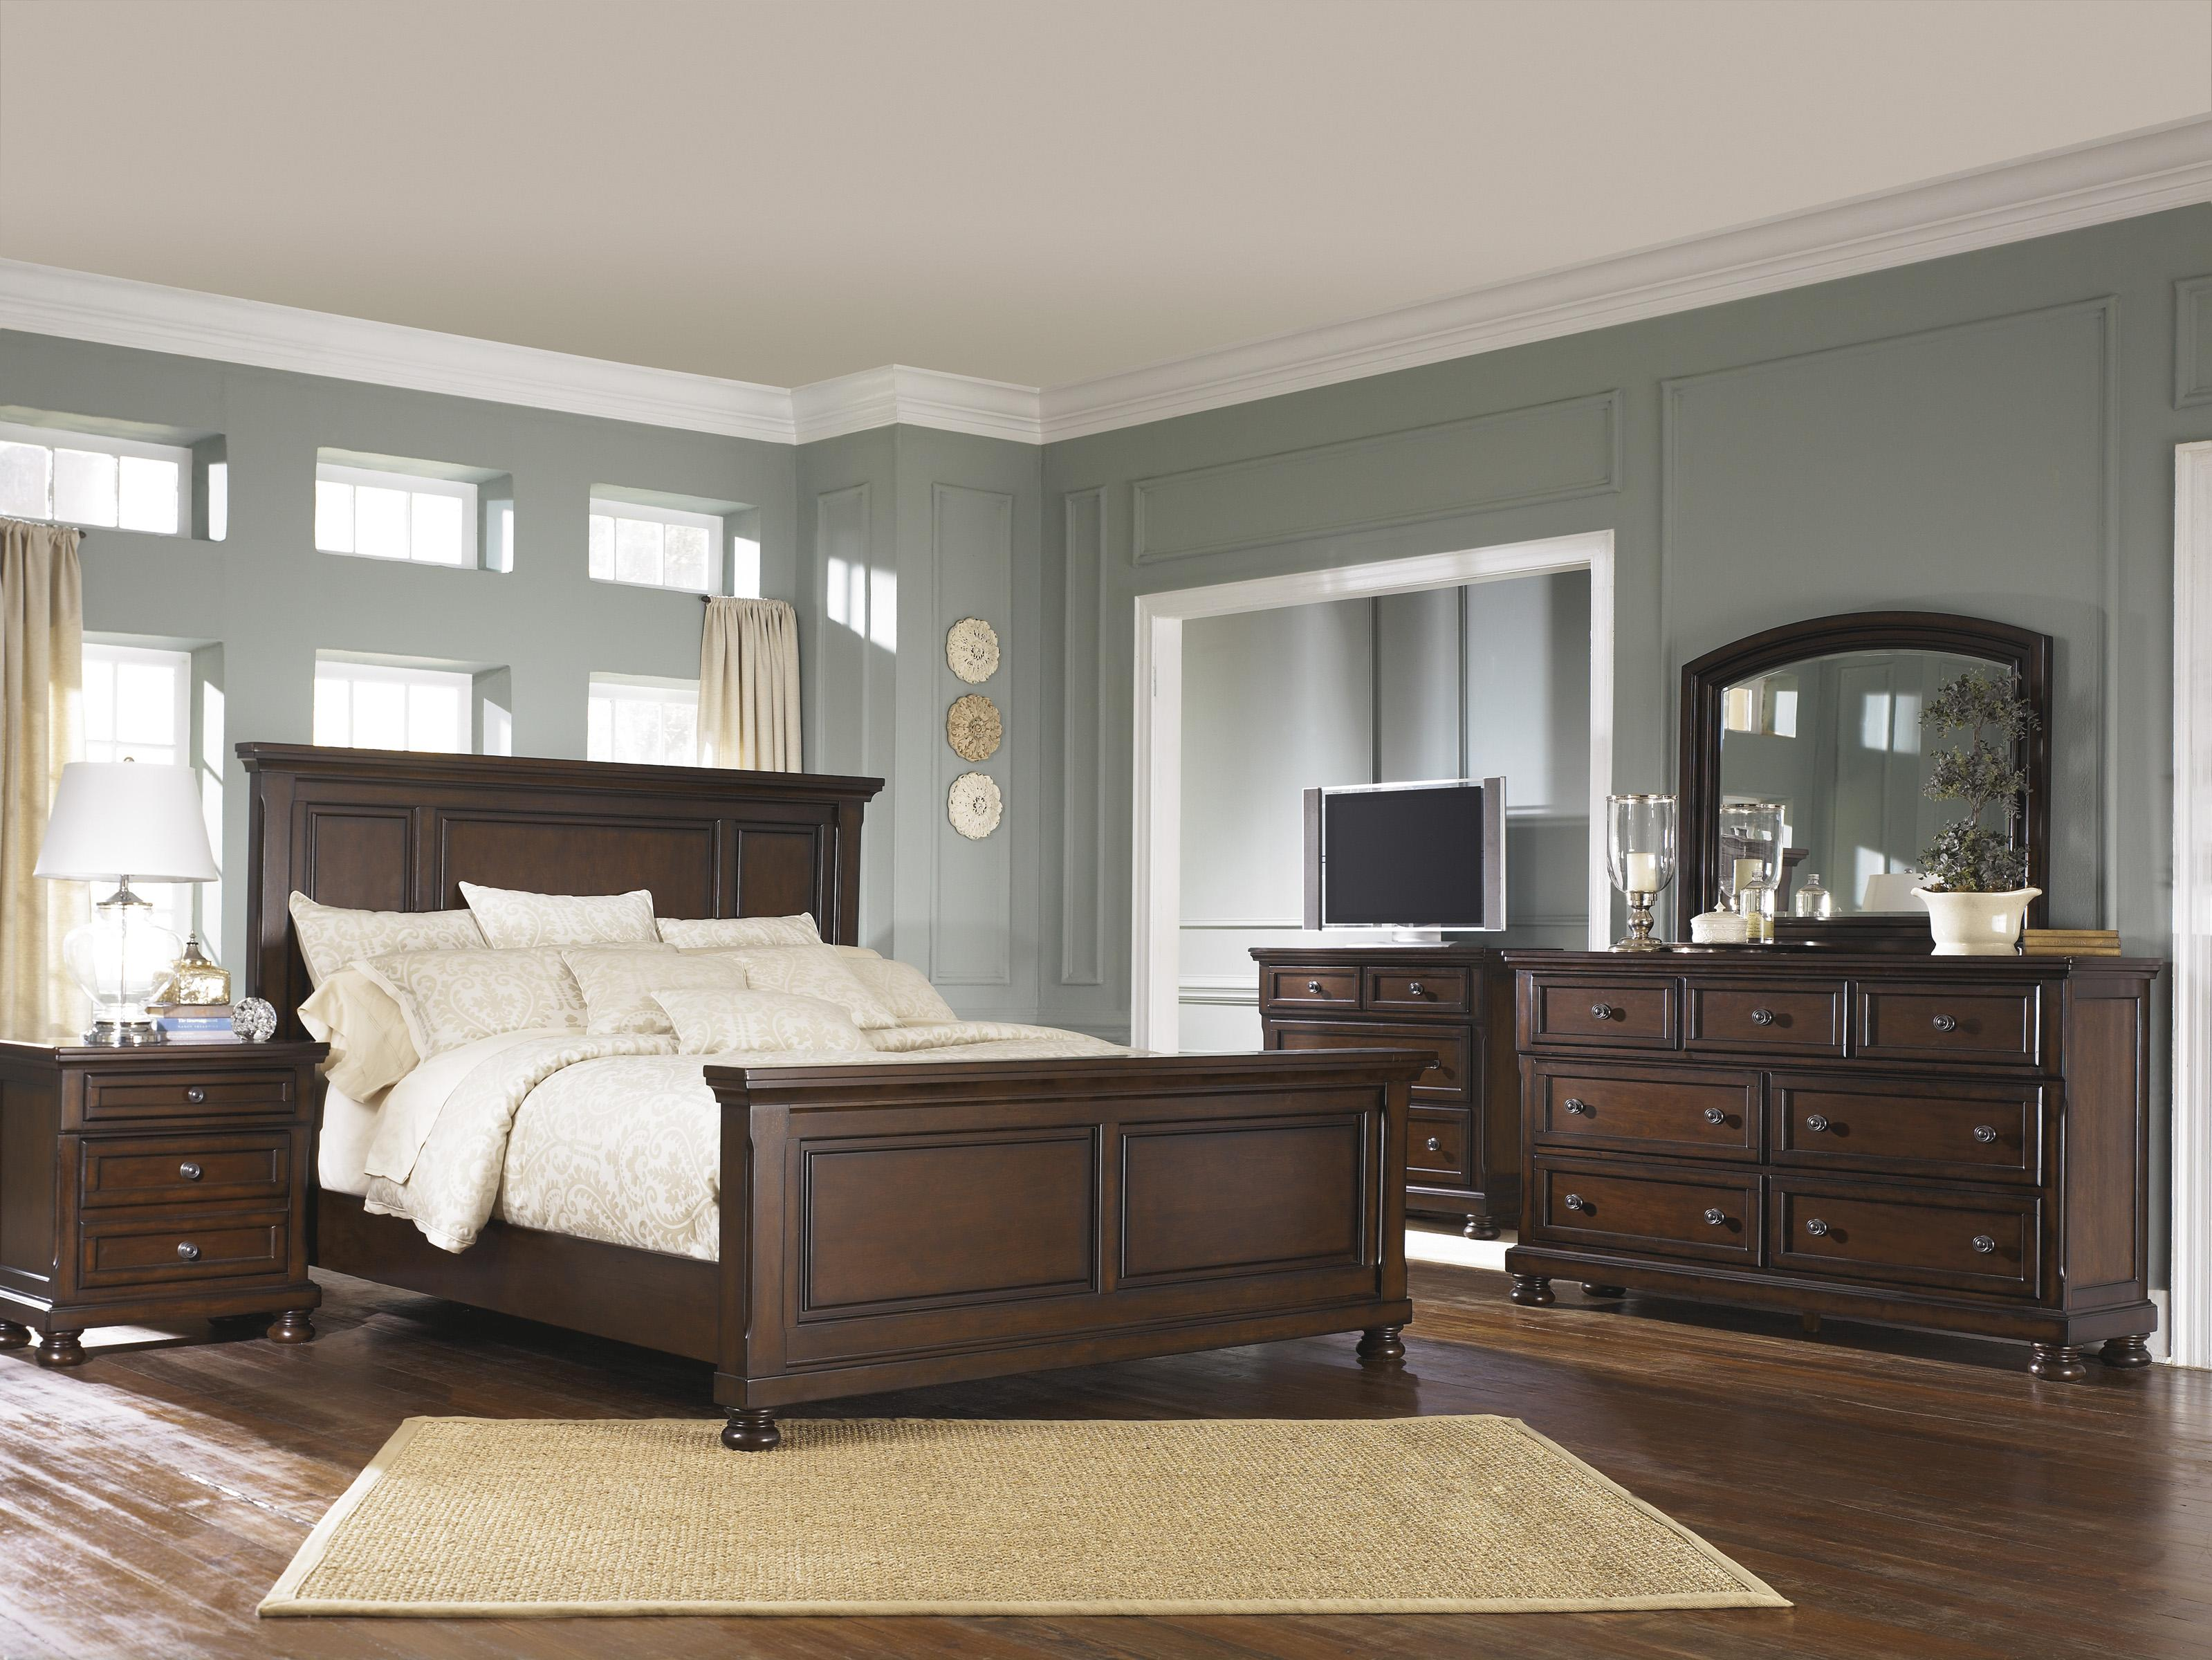 Ashley furniture porter queen bedroom group northeast for Factory direct bedroom furniture